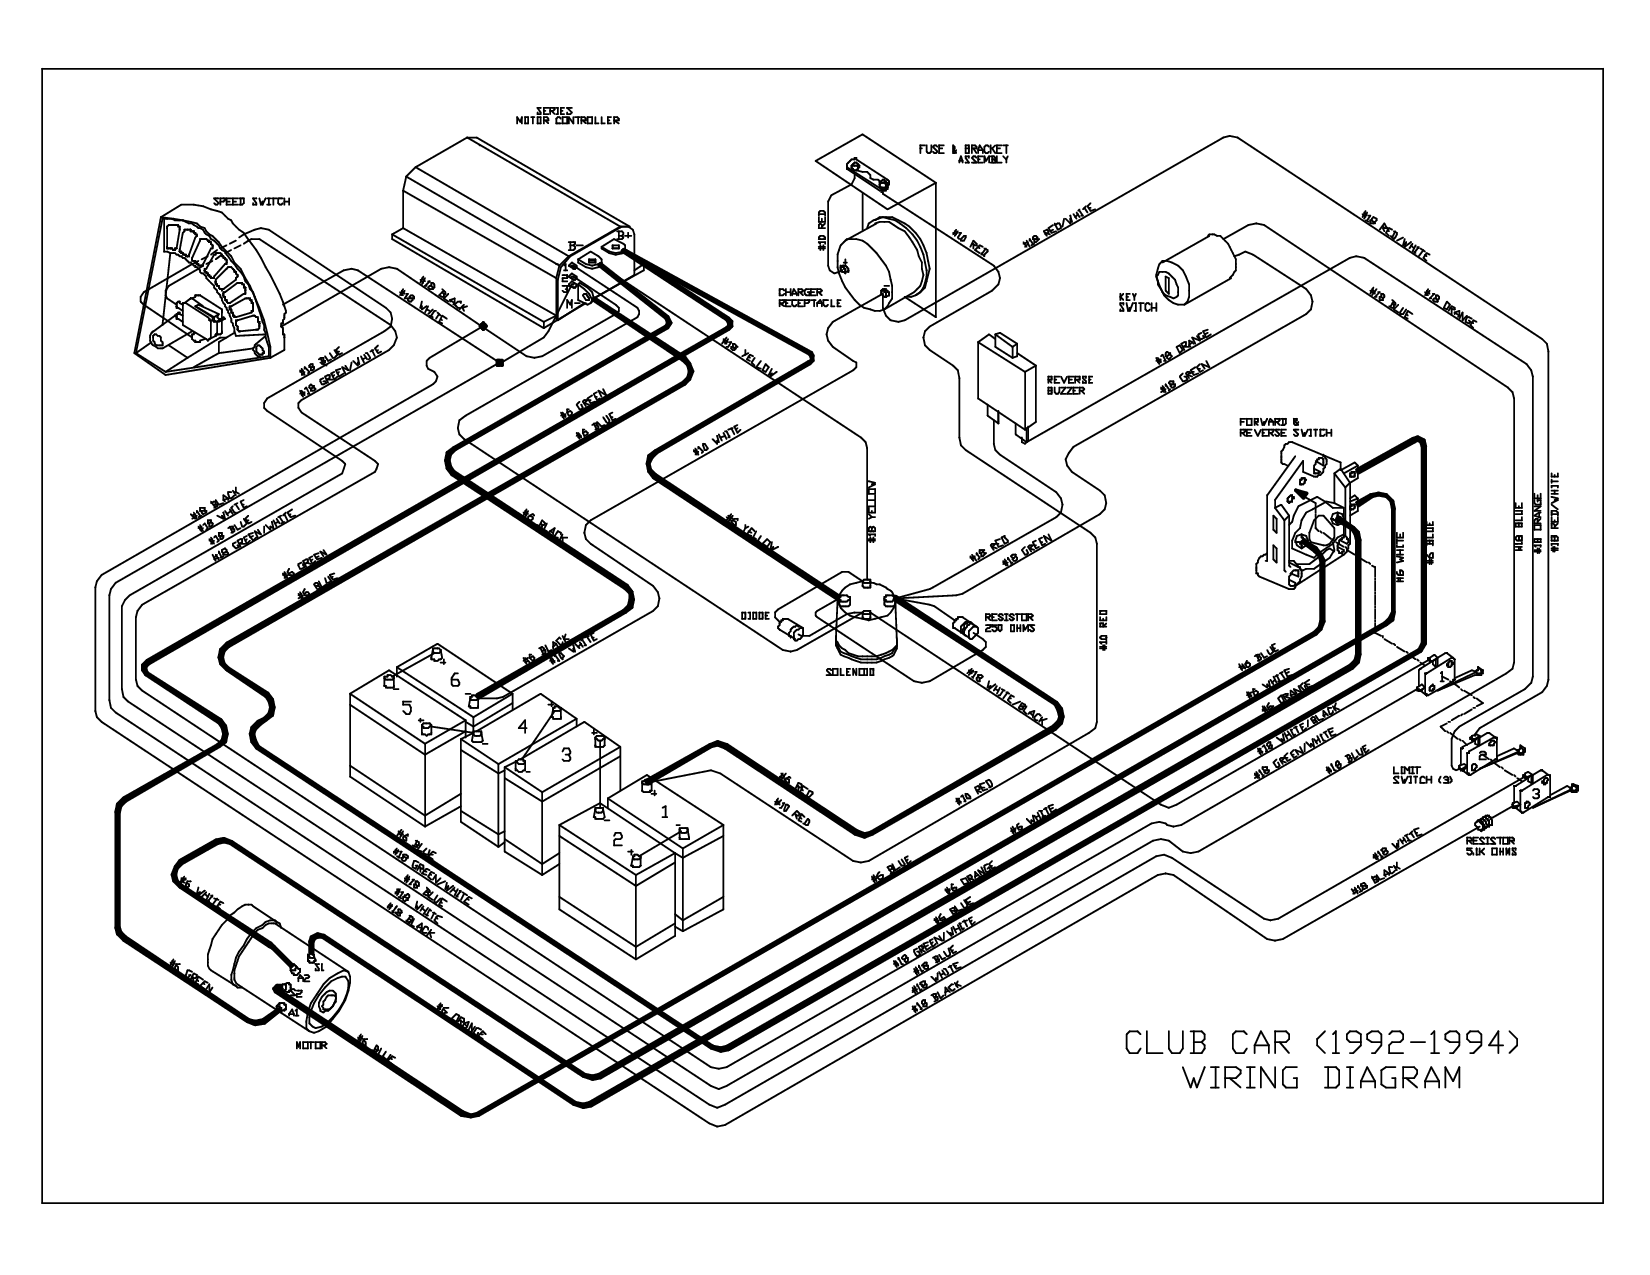 2002 electric club car wiring diagram